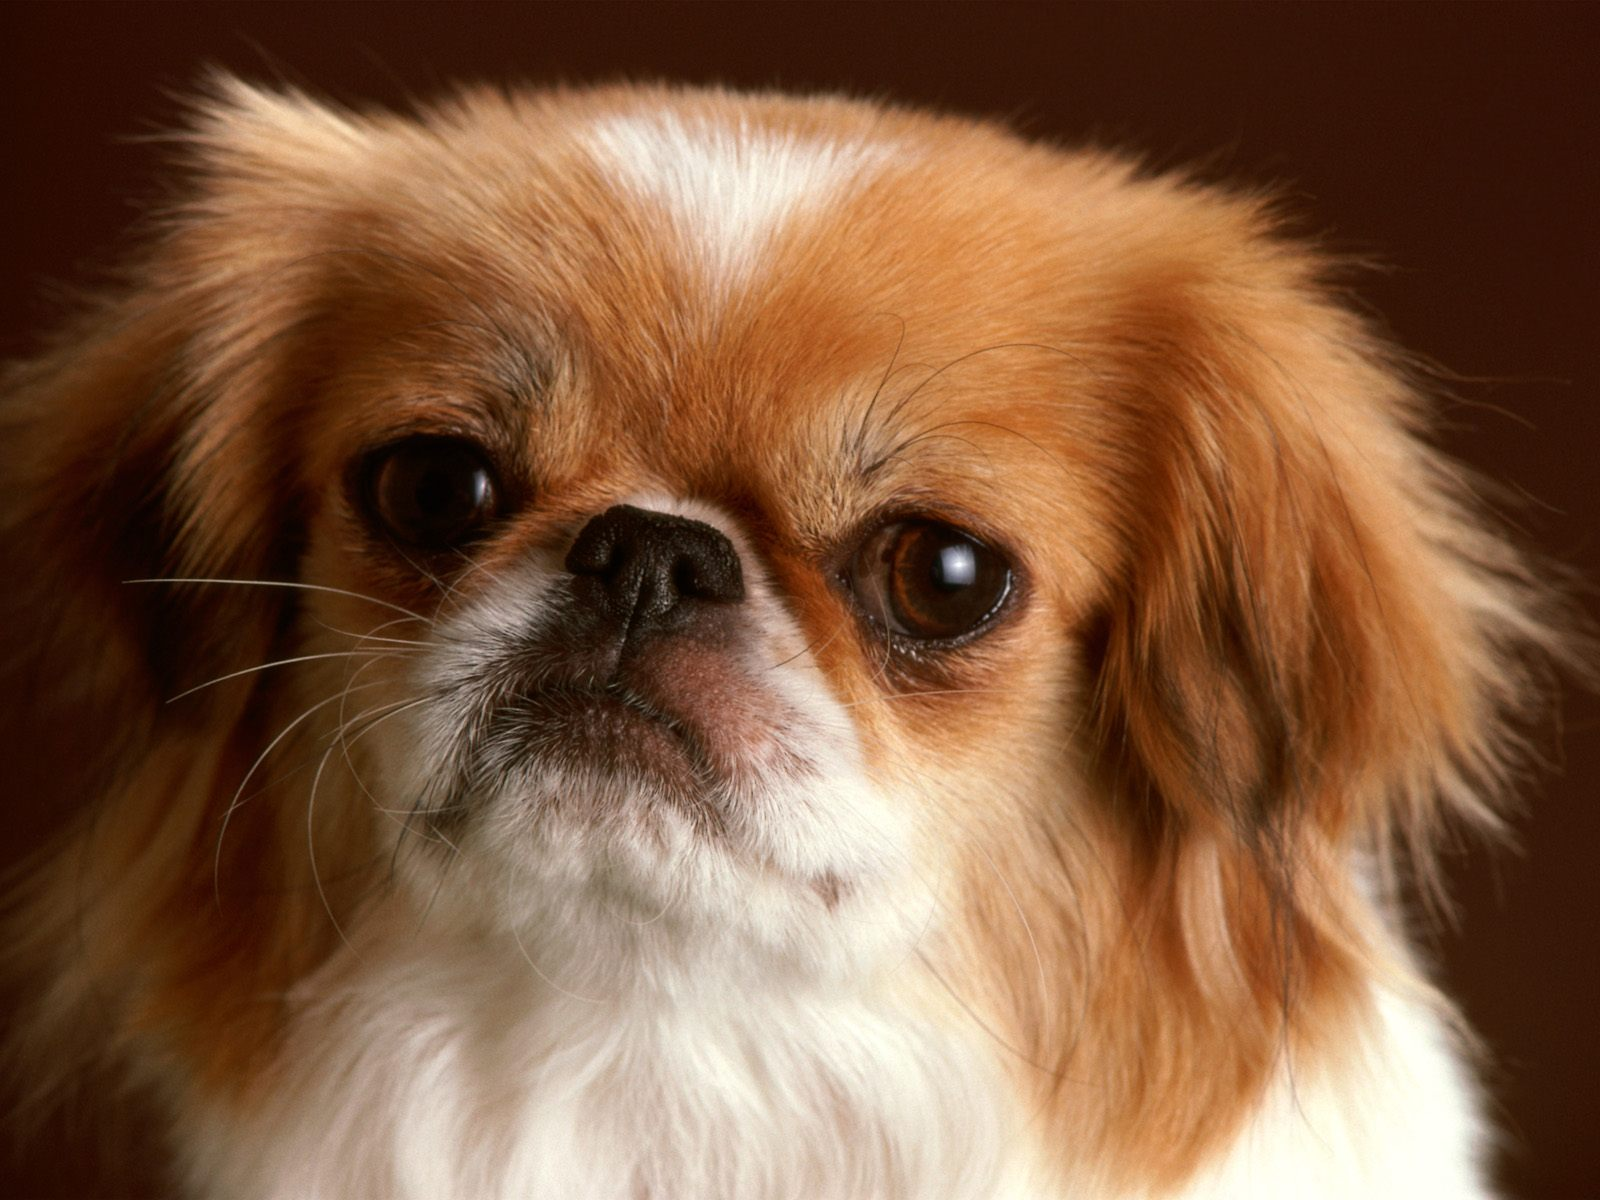 wallpapers dog wallpaper dog wallpapers dogs wallpaper dogs for 1600x1200